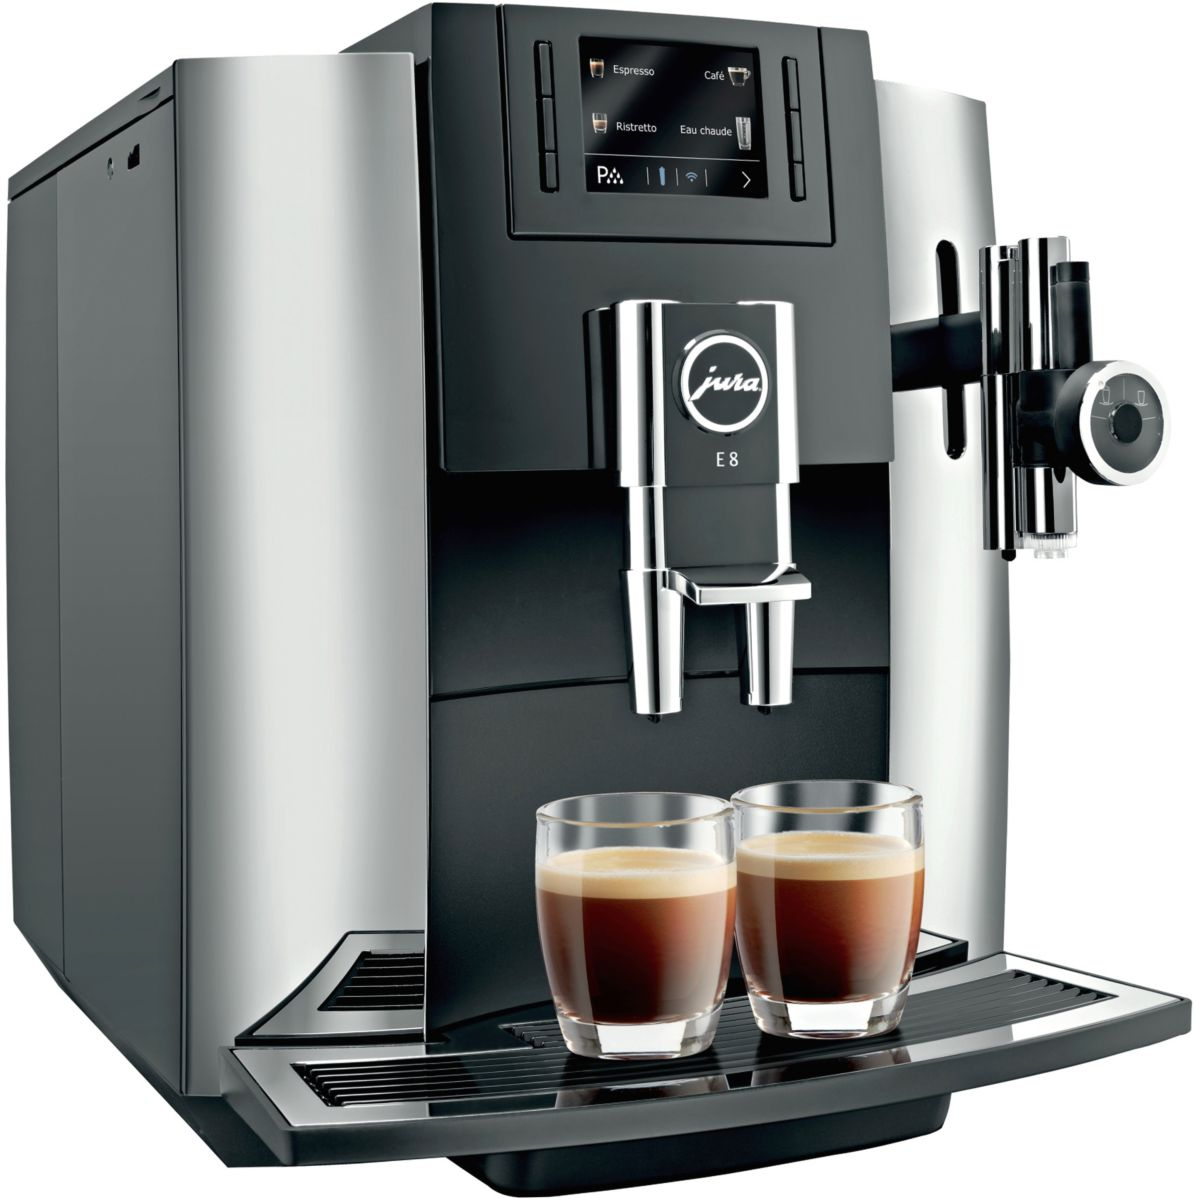 machine a cafe delonghi avec broyeur beautiful broyeur cafe with machine a cafe delonghi avec. Black Bedroom Furniture Sets. Home Design Ideas